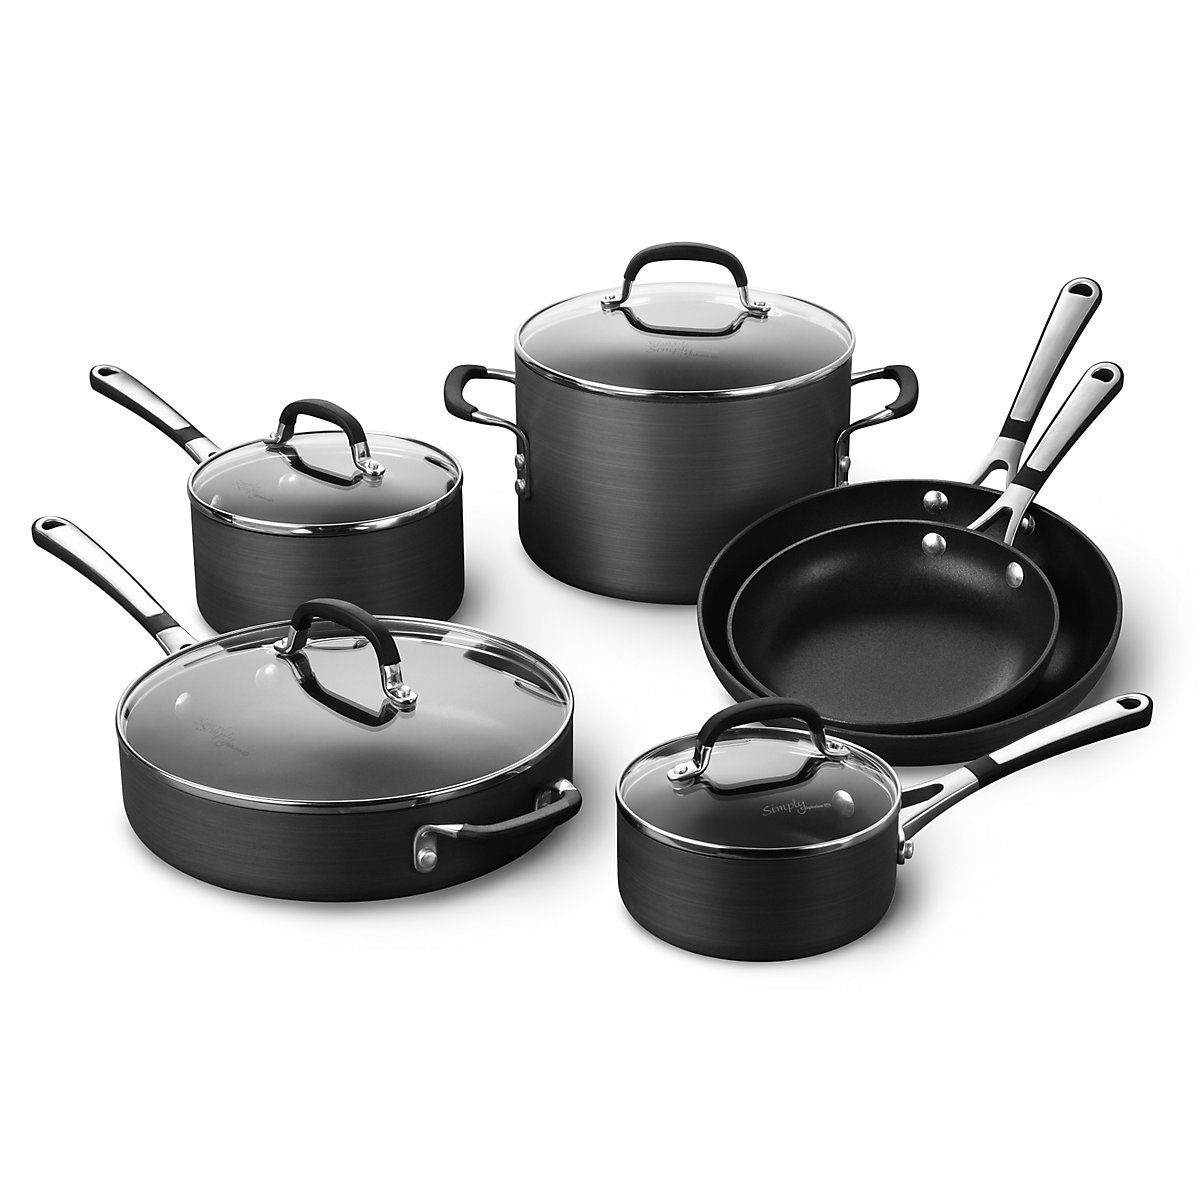 Cooking with Calphalon Nonstick Cookware, 10-Piece Set – The Best ...